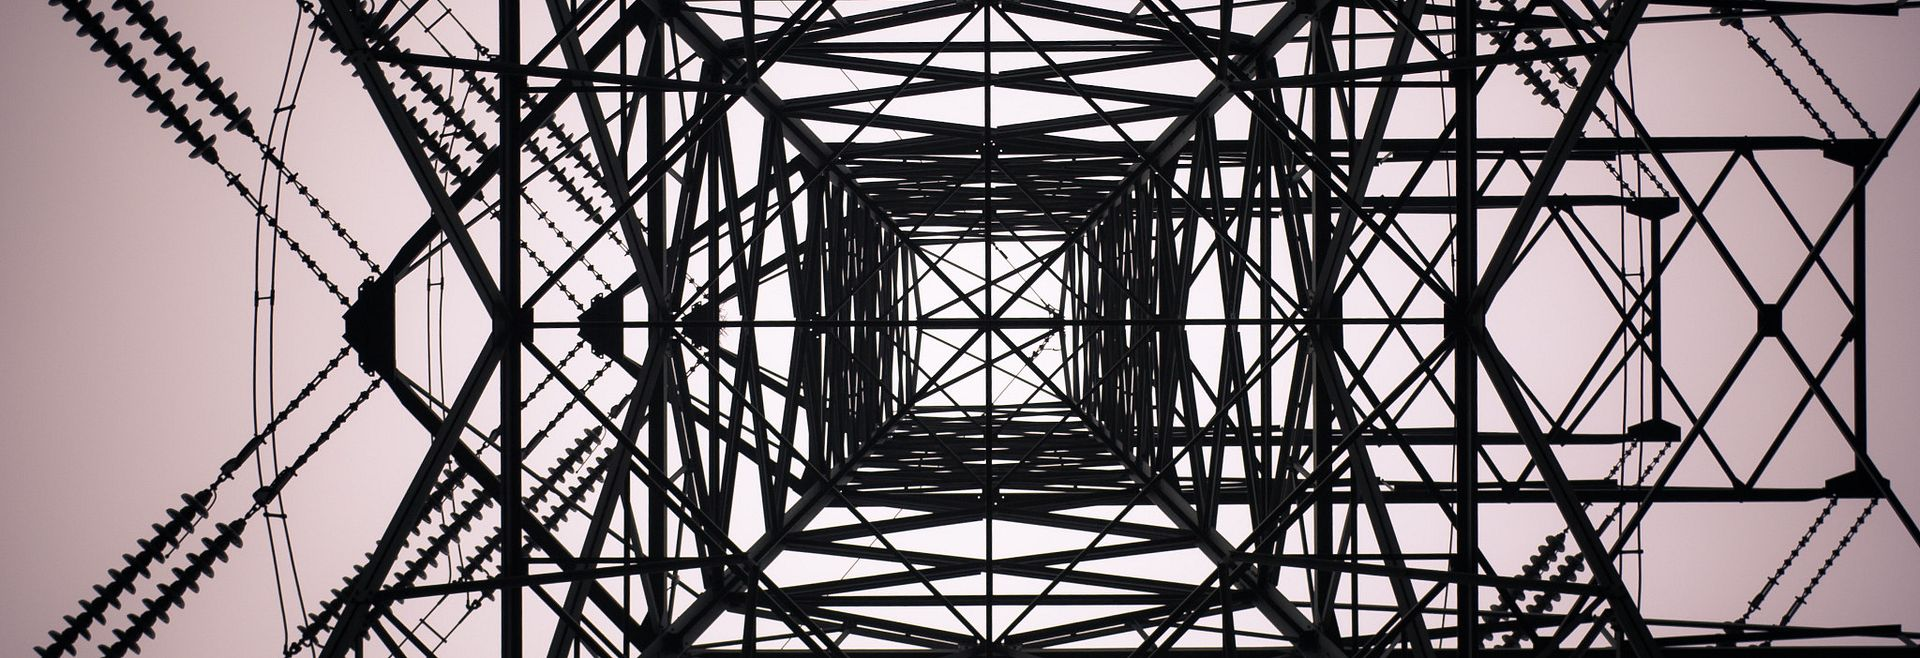 Looking upward through a transmission power tower